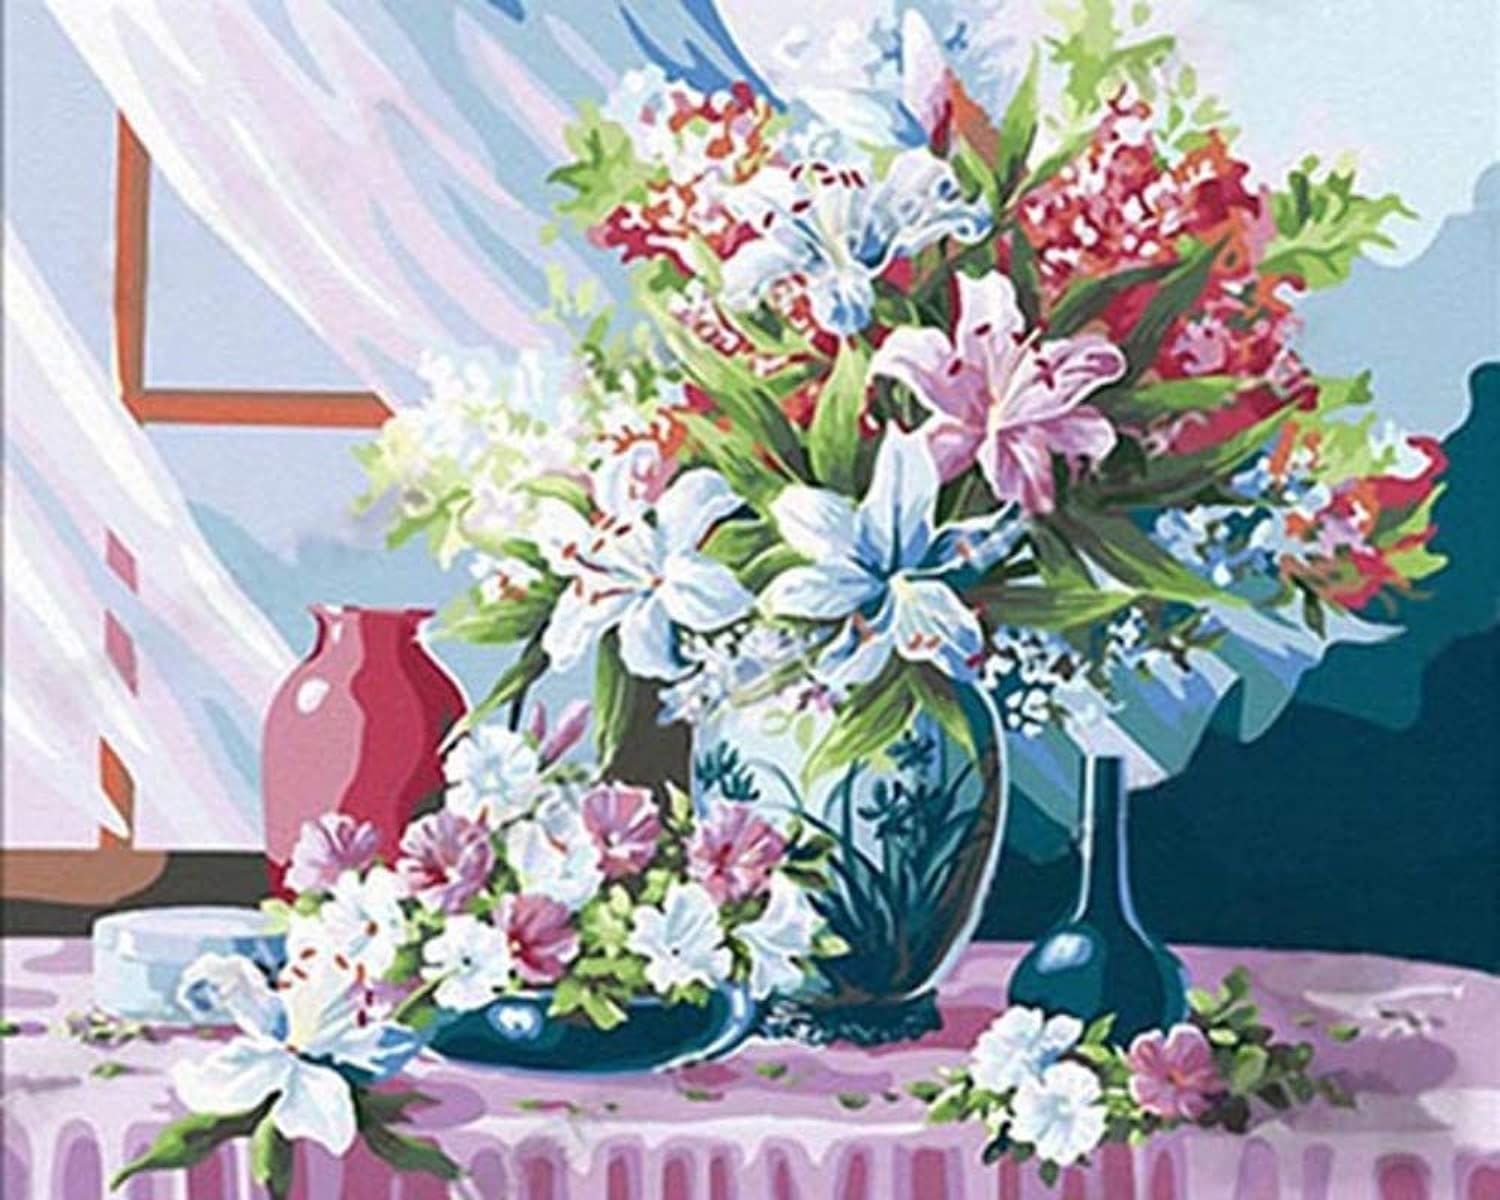 DIY Digital Painting Abstract Painting Living Room Decoration Painting Birthday Gift Decoration Painting Hand-Painted Plant Flowers Oil Painting Hand-Painted Paintings Christmas Frameless, 40x50cm